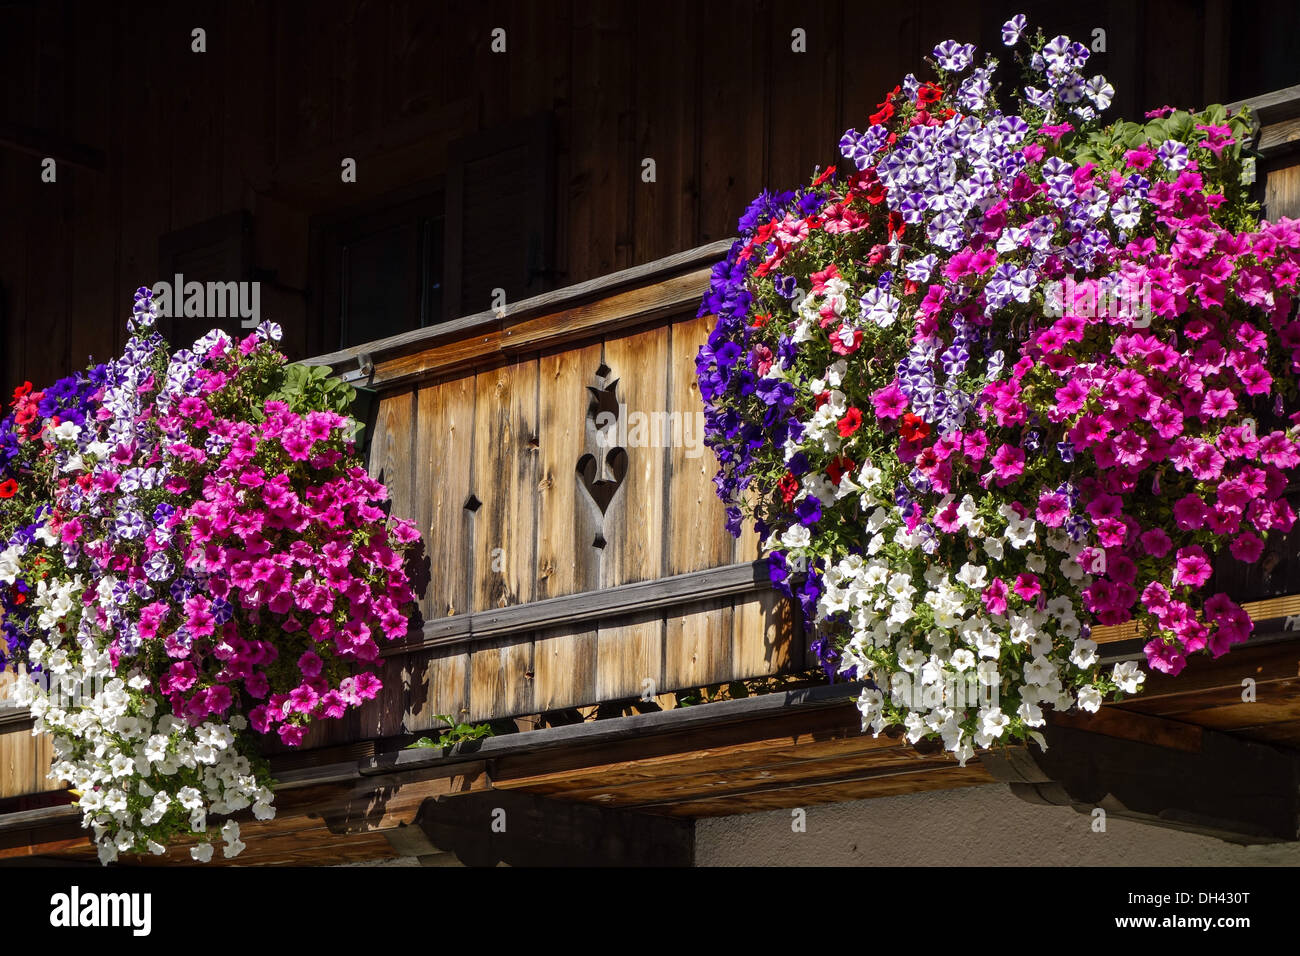 kochel am see kochelsee balkonblumen an einem bauernhaus bayern stock photo royalty free. Black Bedroom Furniture Sets. Home Design Ideas